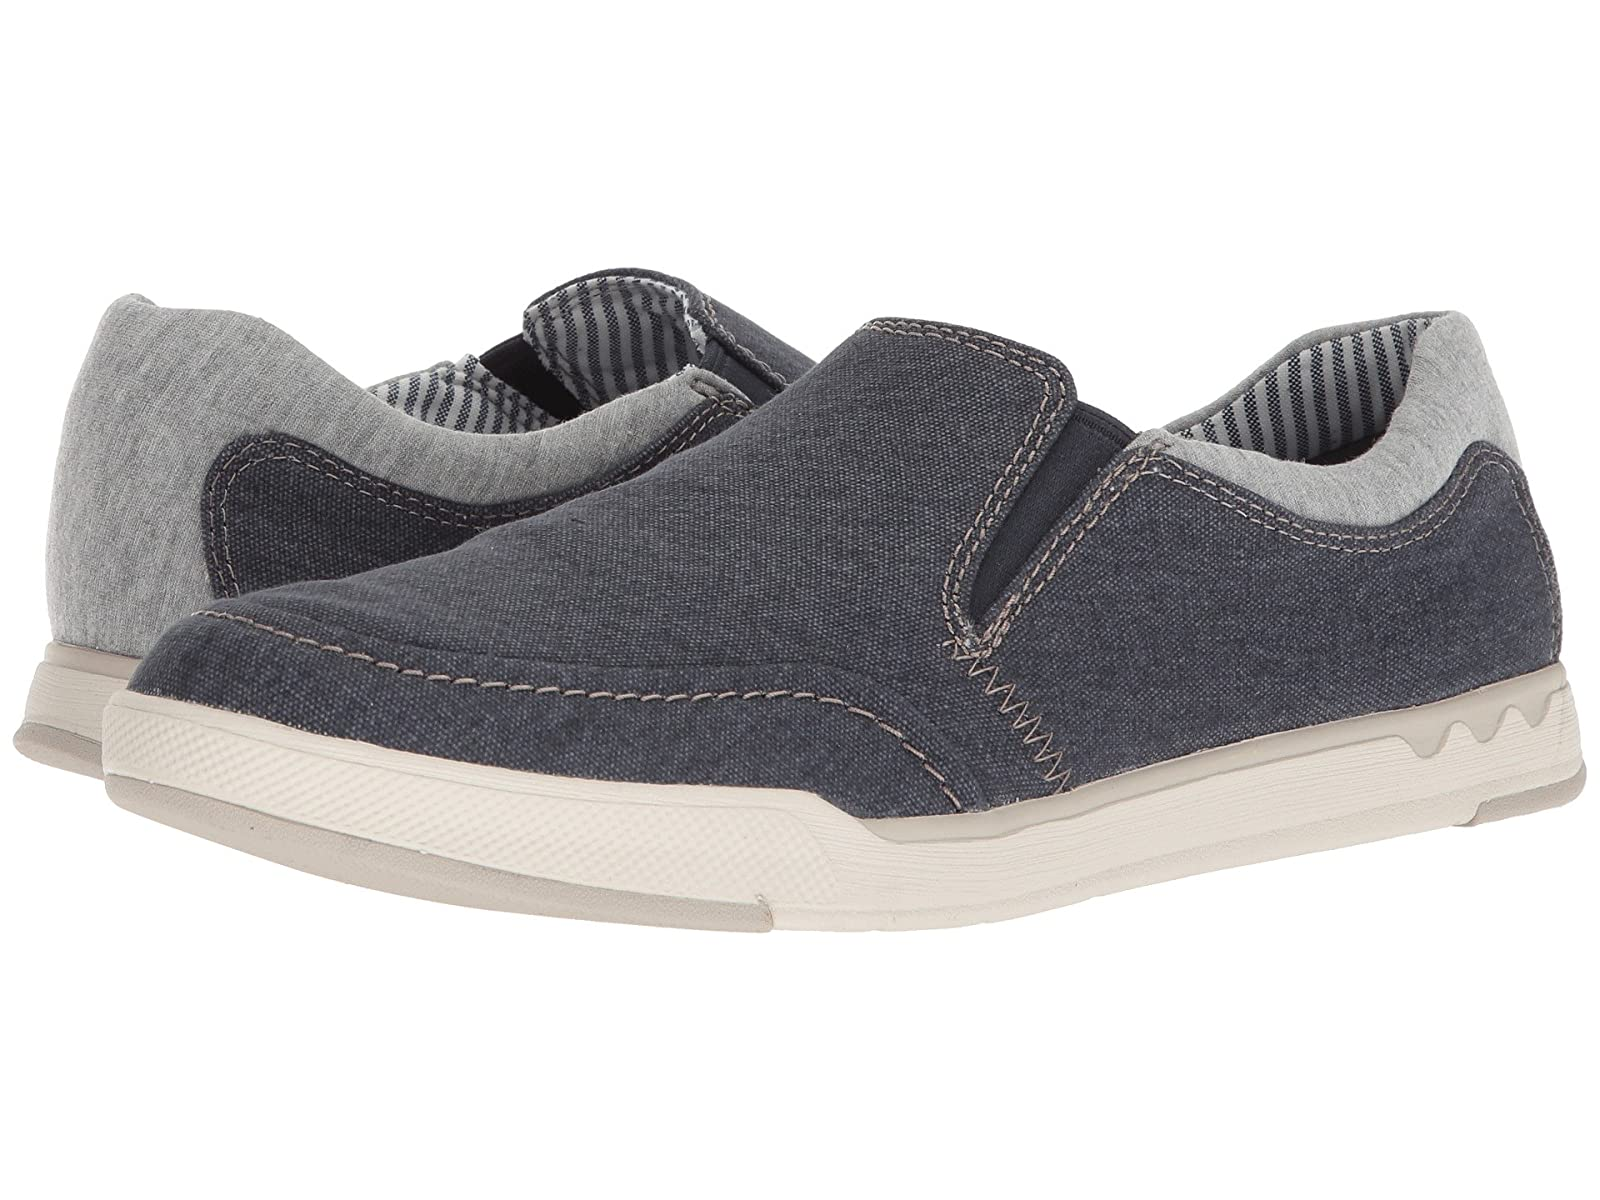 Clarks Step Isle SlipAtmospheric grades have affordable shoes